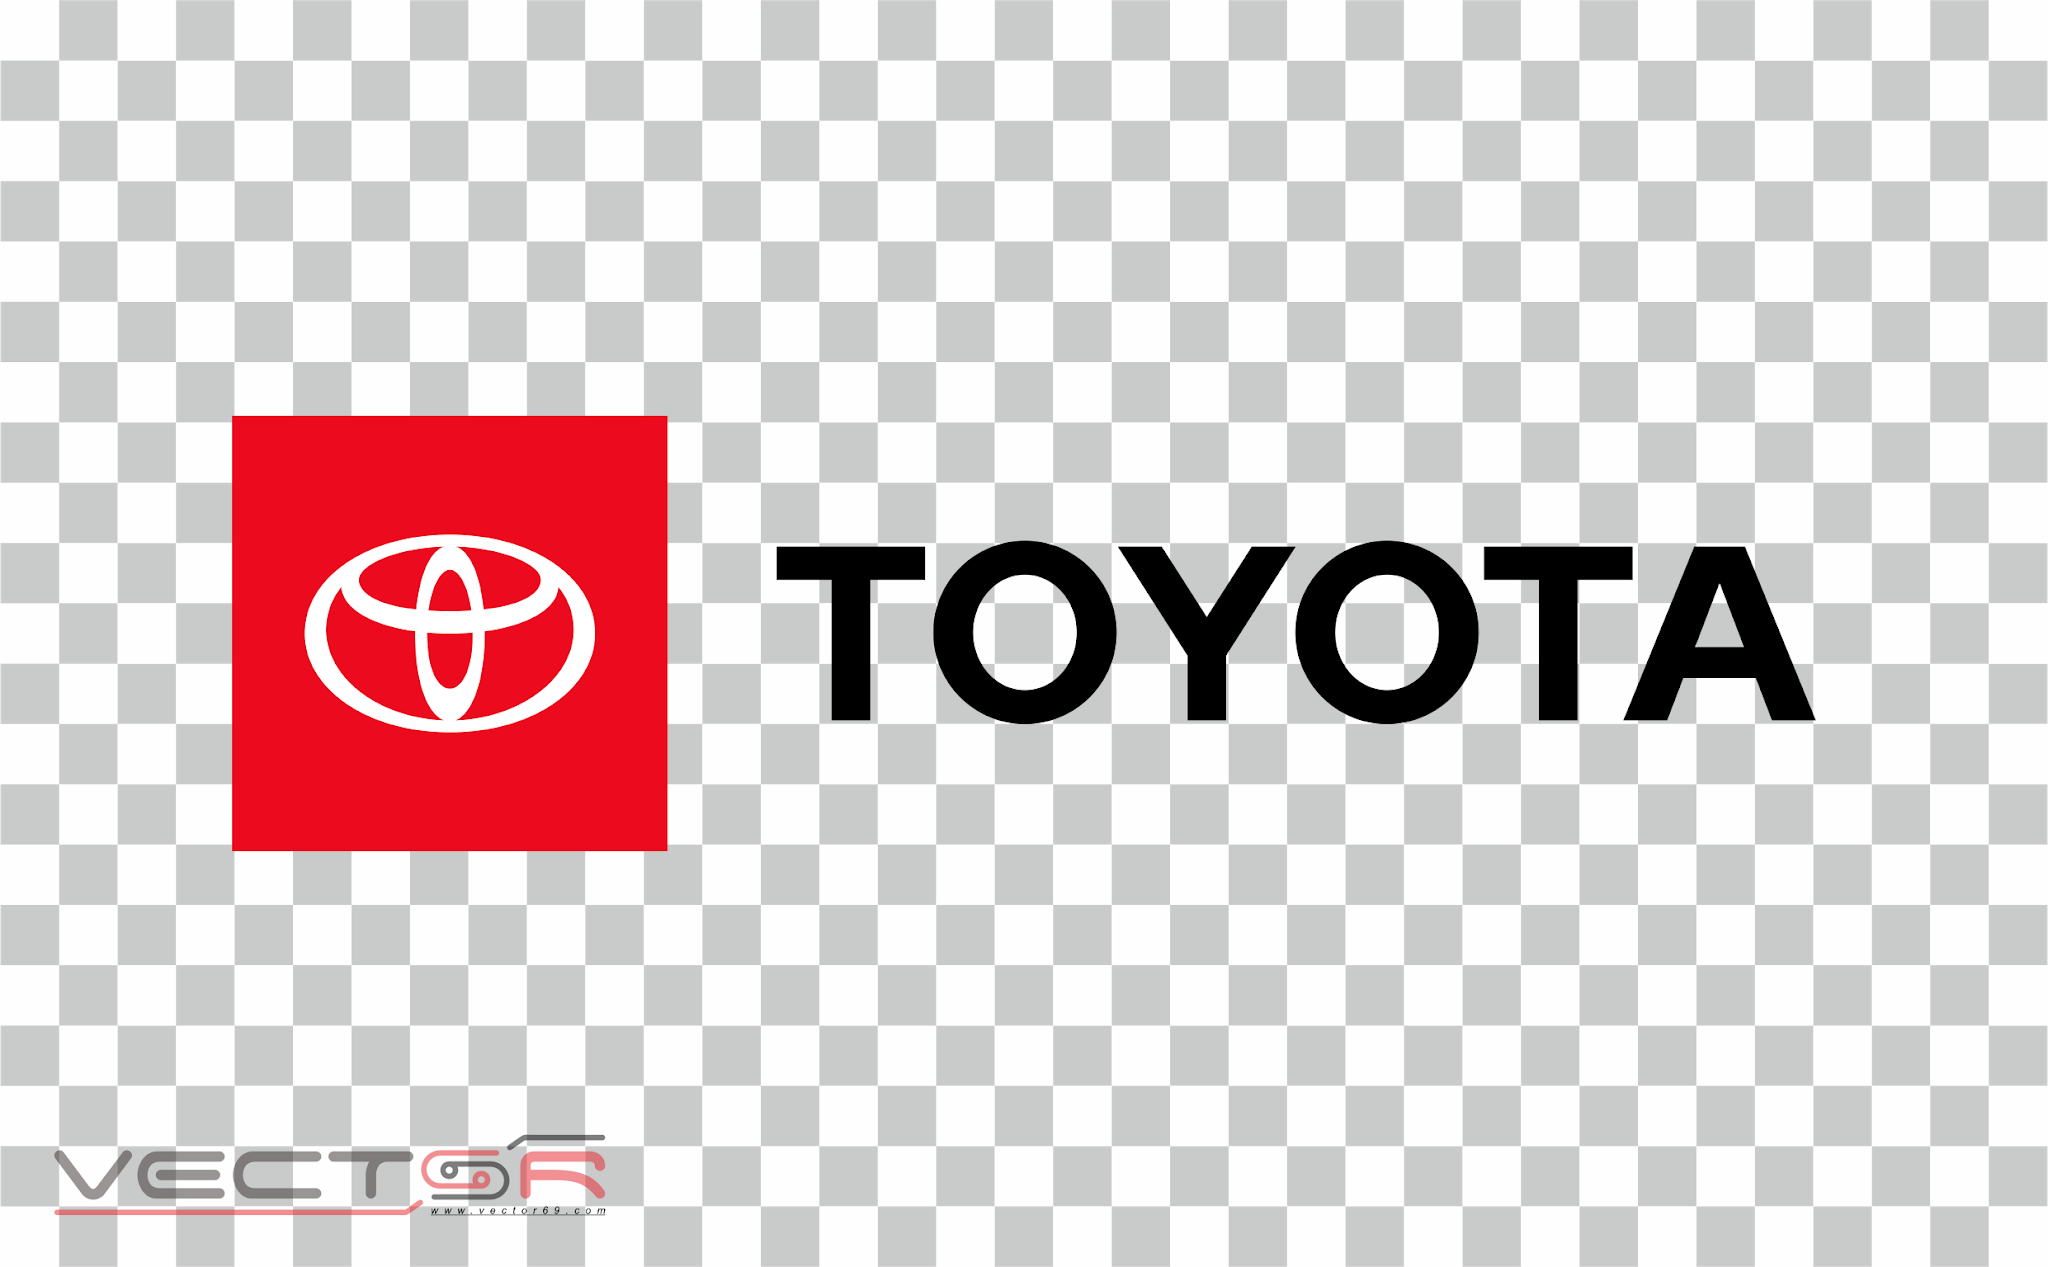 Toyota Logo - Download Vector File PNG (Portable Network Graphics)